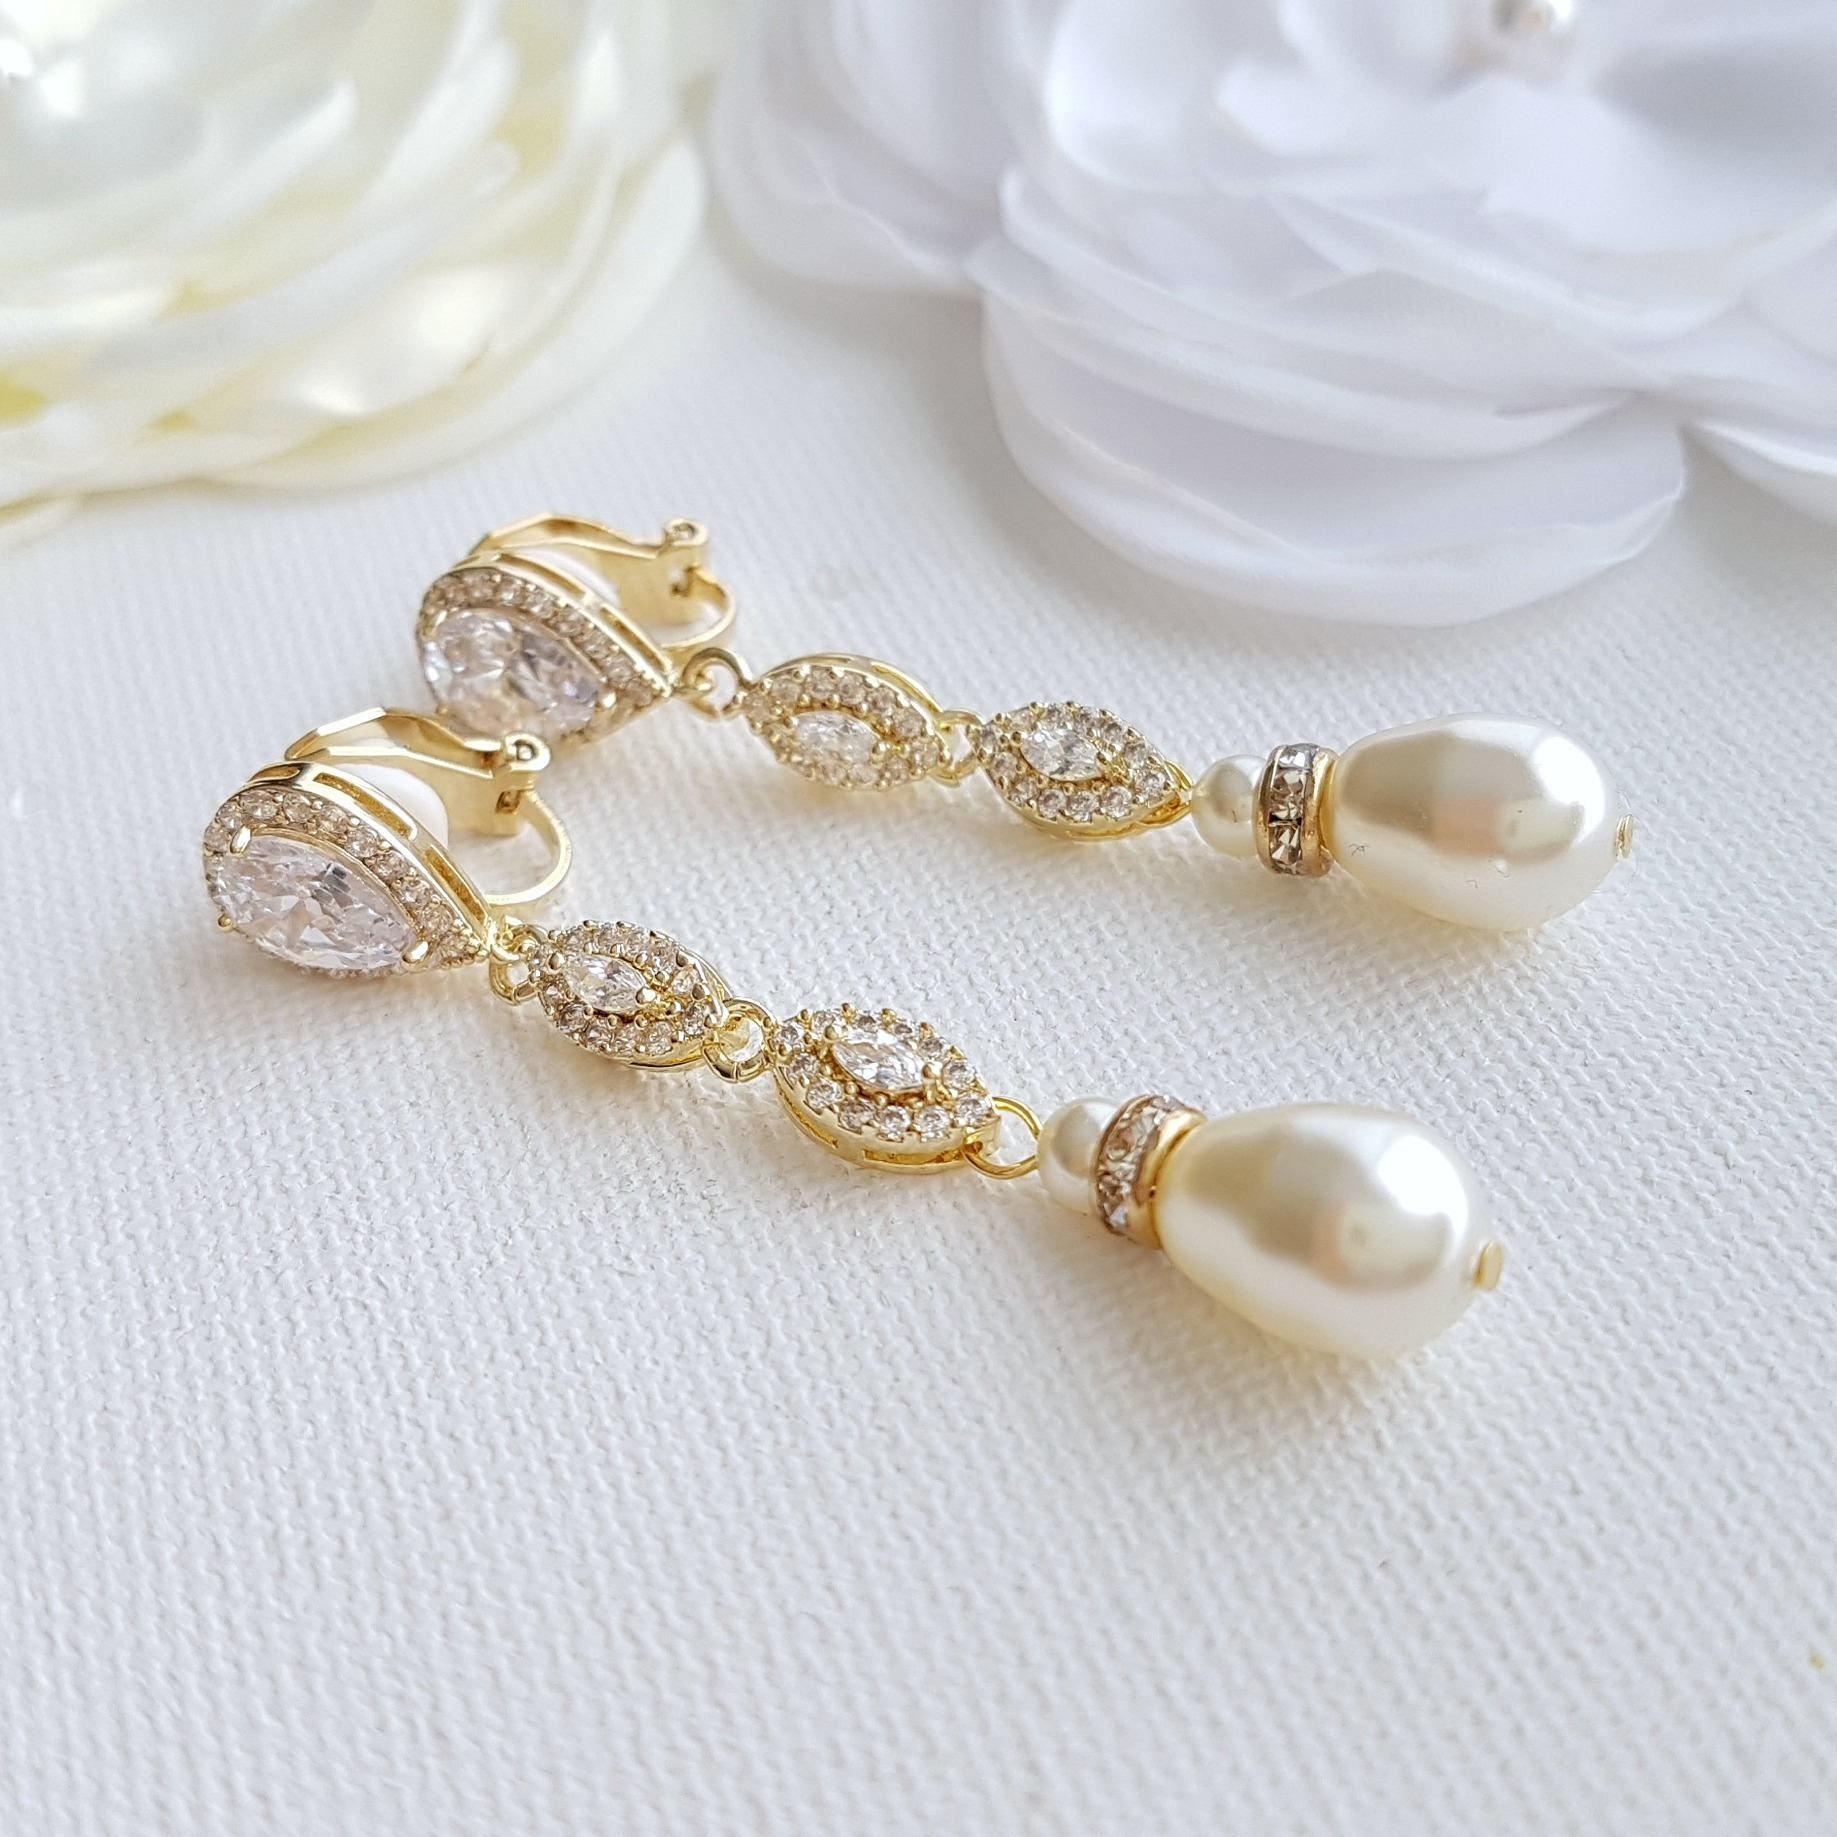 Gold Clip On Bridal Earrings-Abby - PoetryDesigns